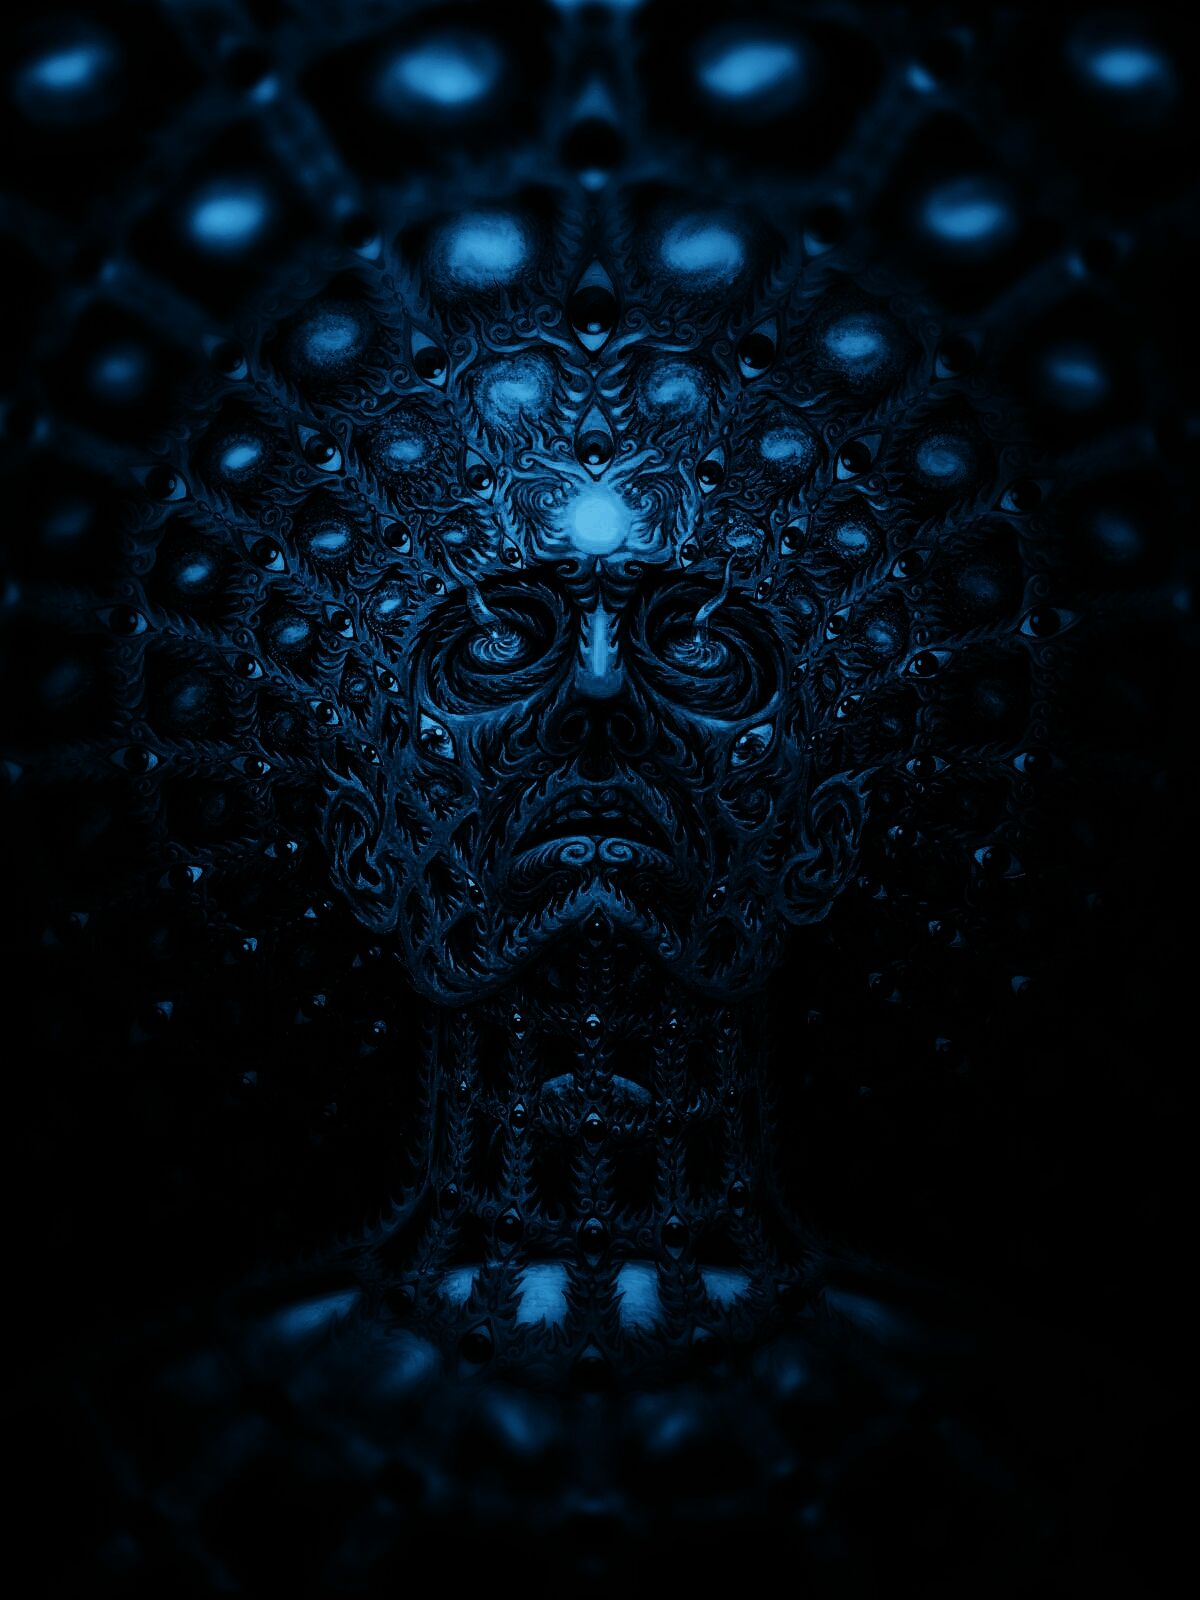 Tool Wallpapers - Top Free Tool Backgrounds - WallpaperAccess